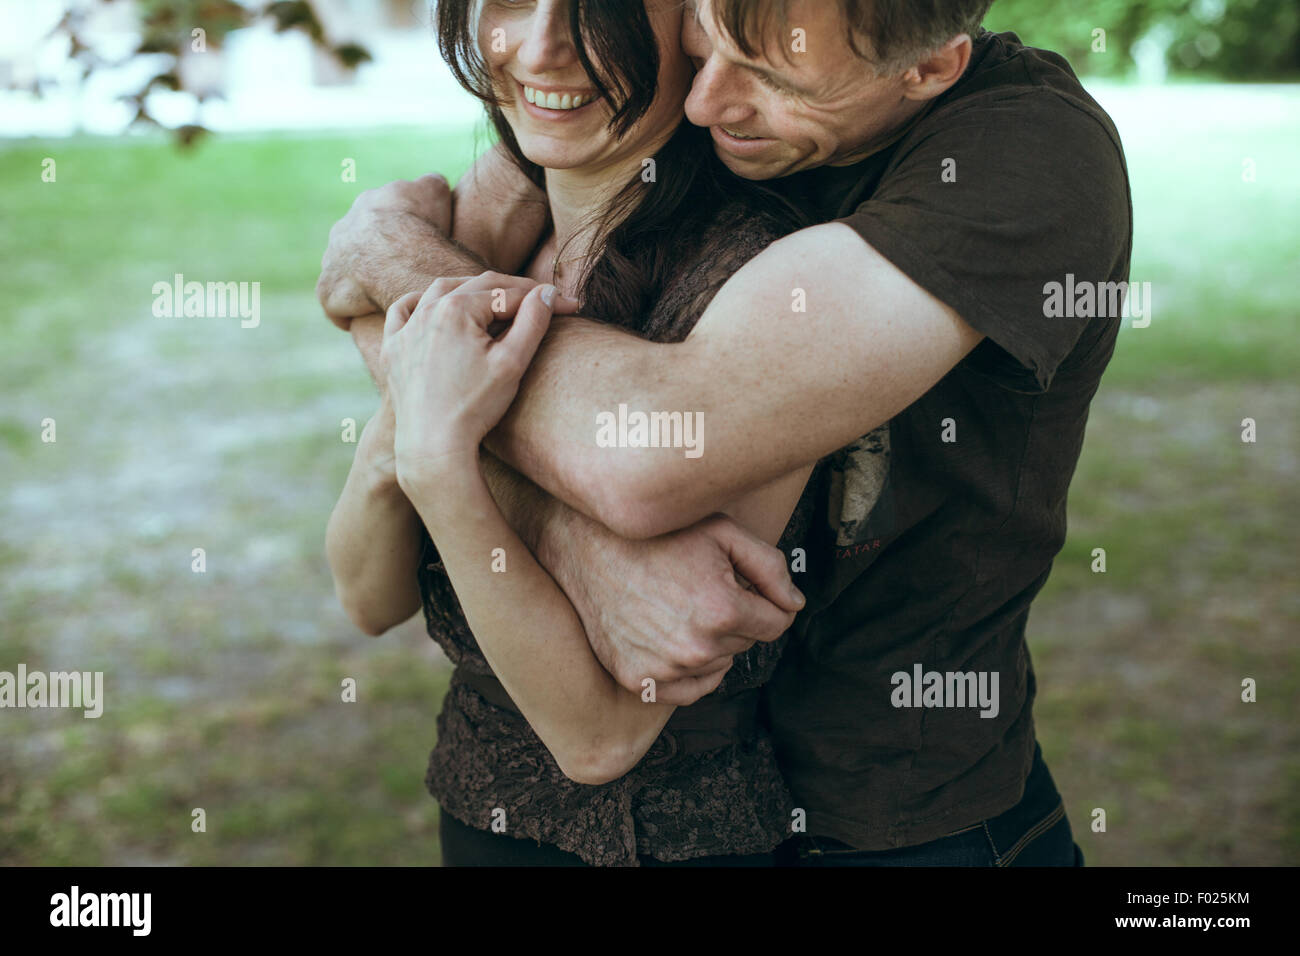 Mature man embracing mature women from behind Stock Photo